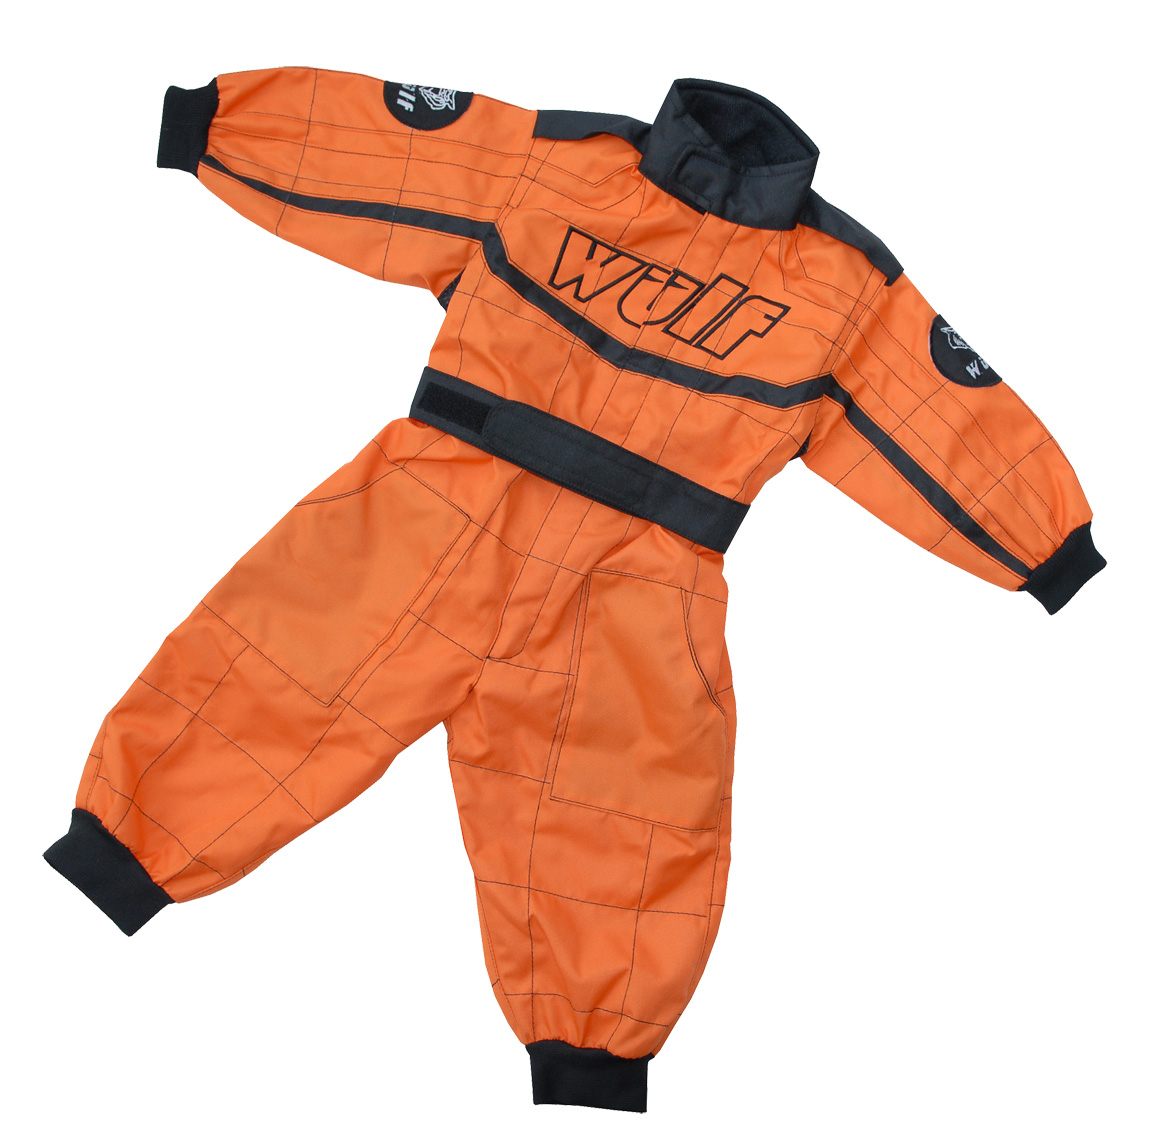 Wulfsport Cub Racing Suit - Orange